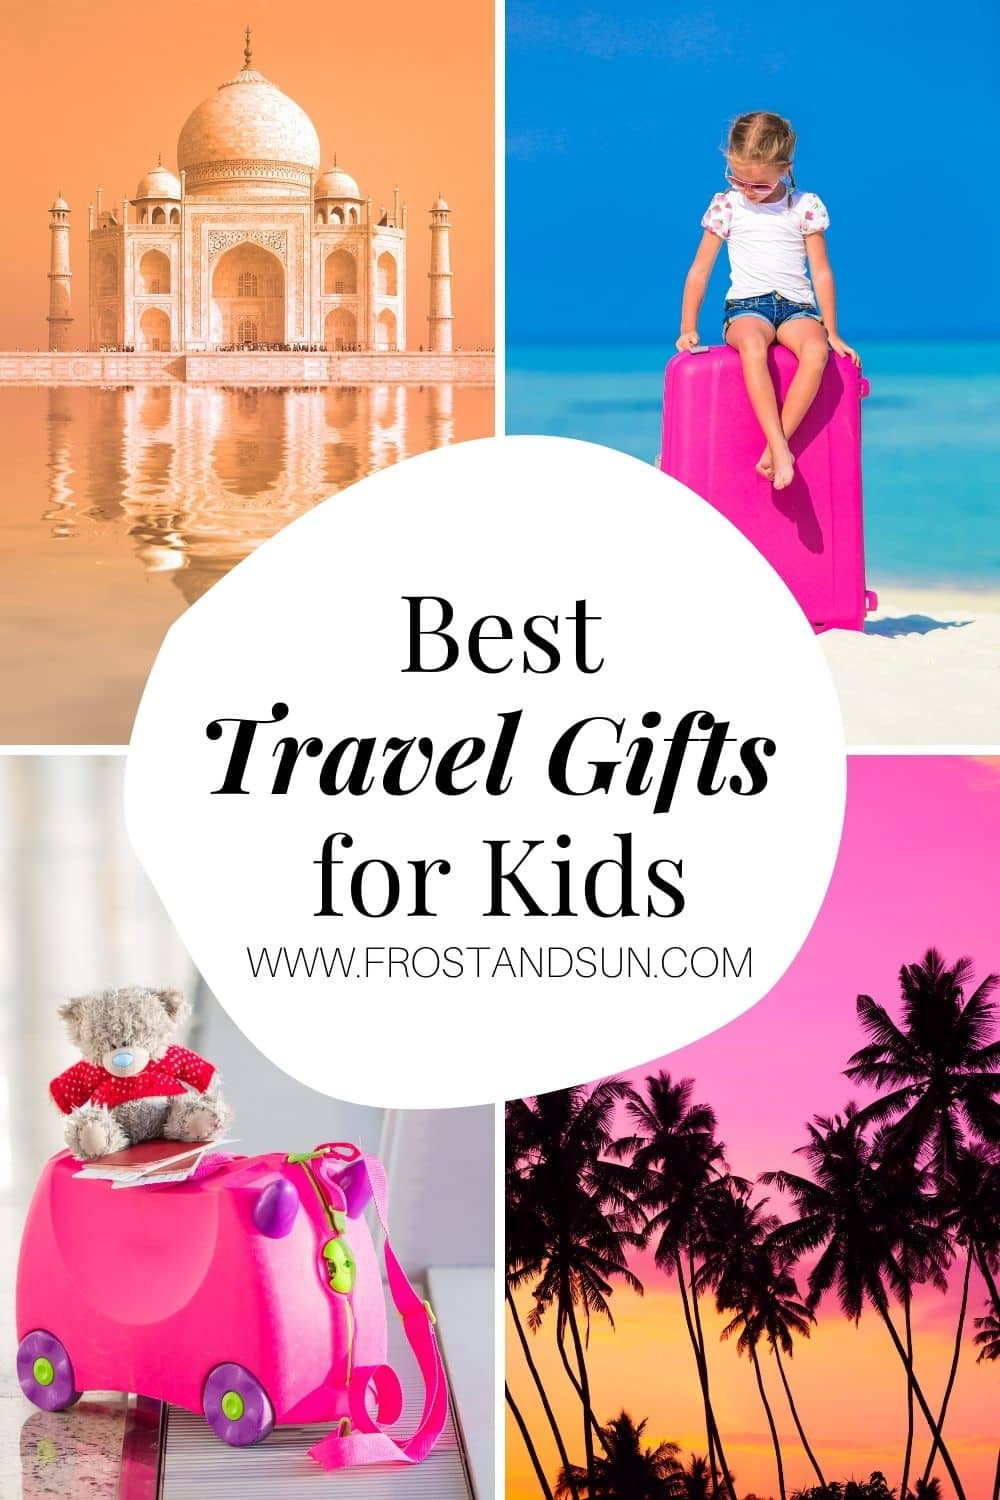 The Best Travel Gifts for Kids of Any Age